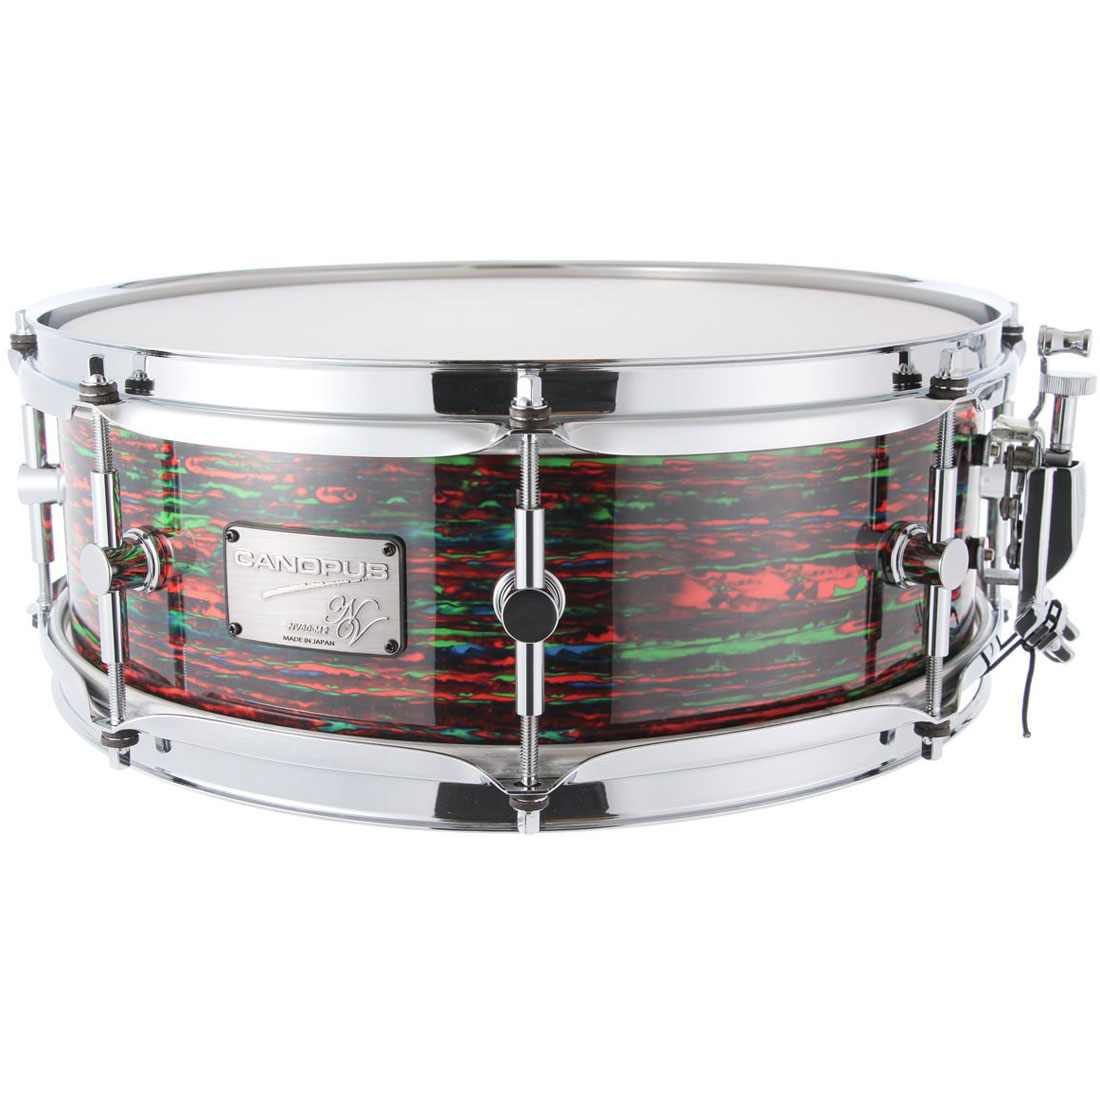 "Canopus 14"" x 6.5"" Neo Vintage M2 Snare Drum in Psychedelic Red"